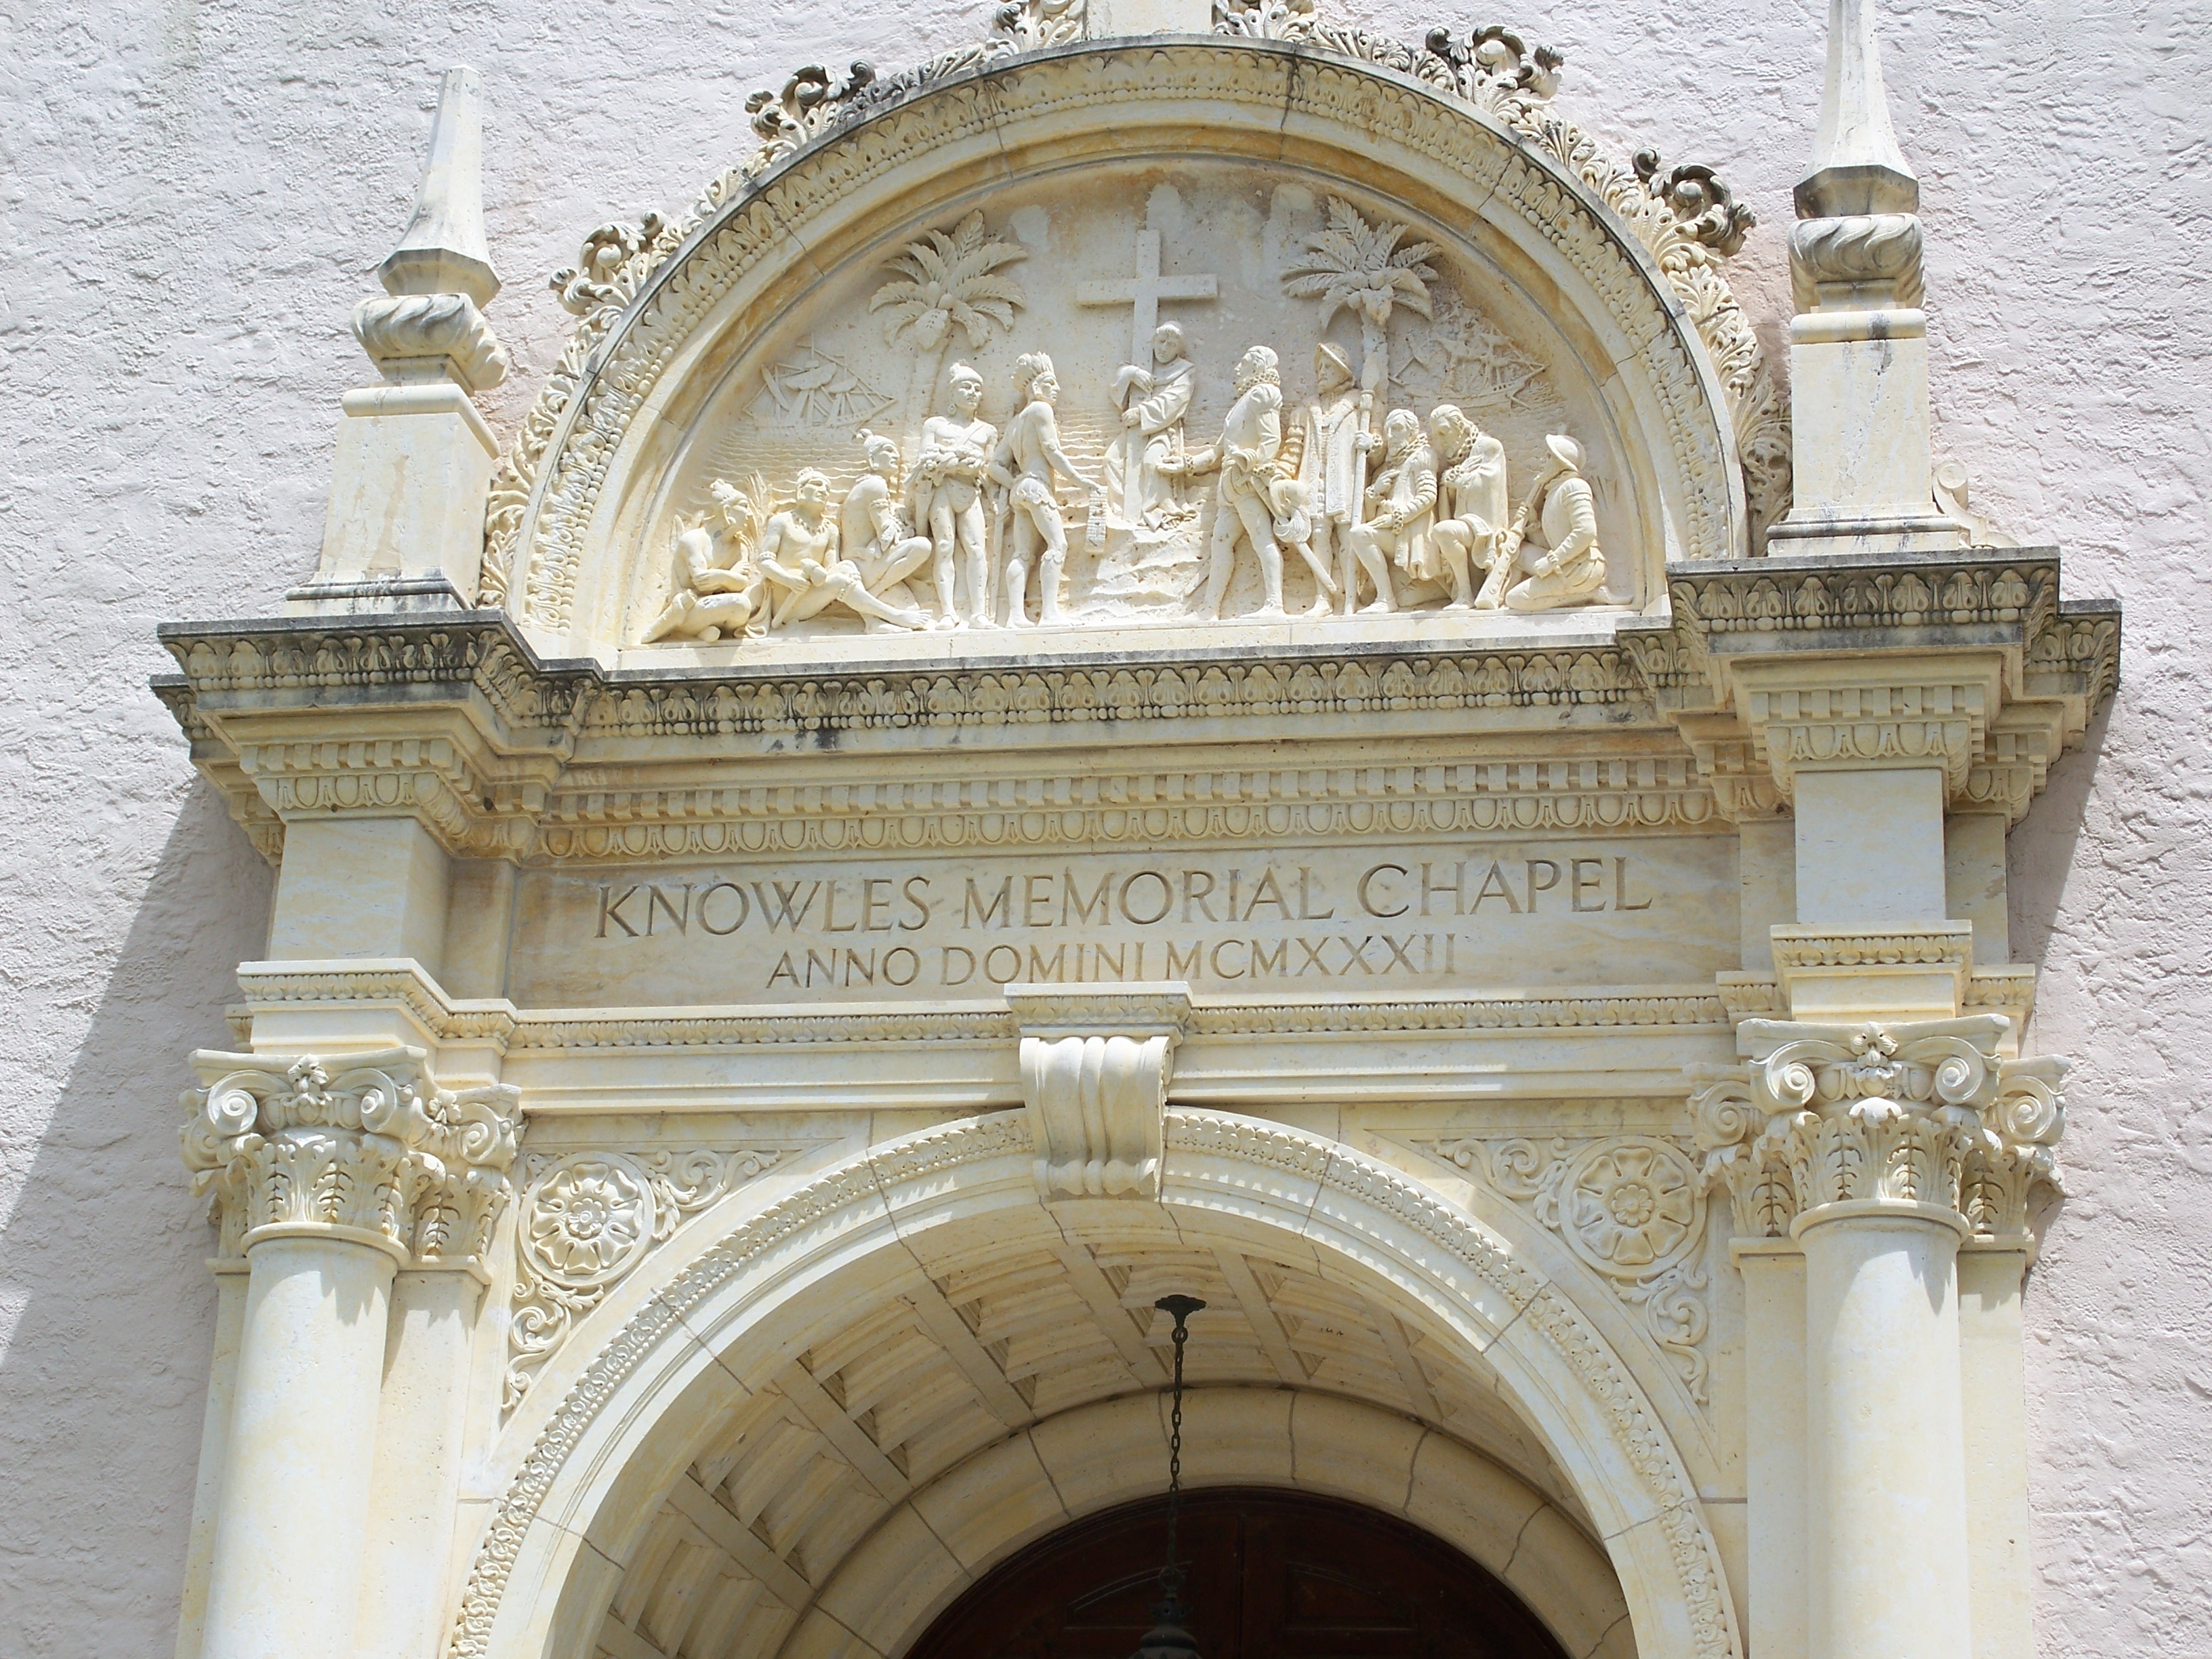 Detail of the relief adorning the entrance of Knowles Memorial Chapel